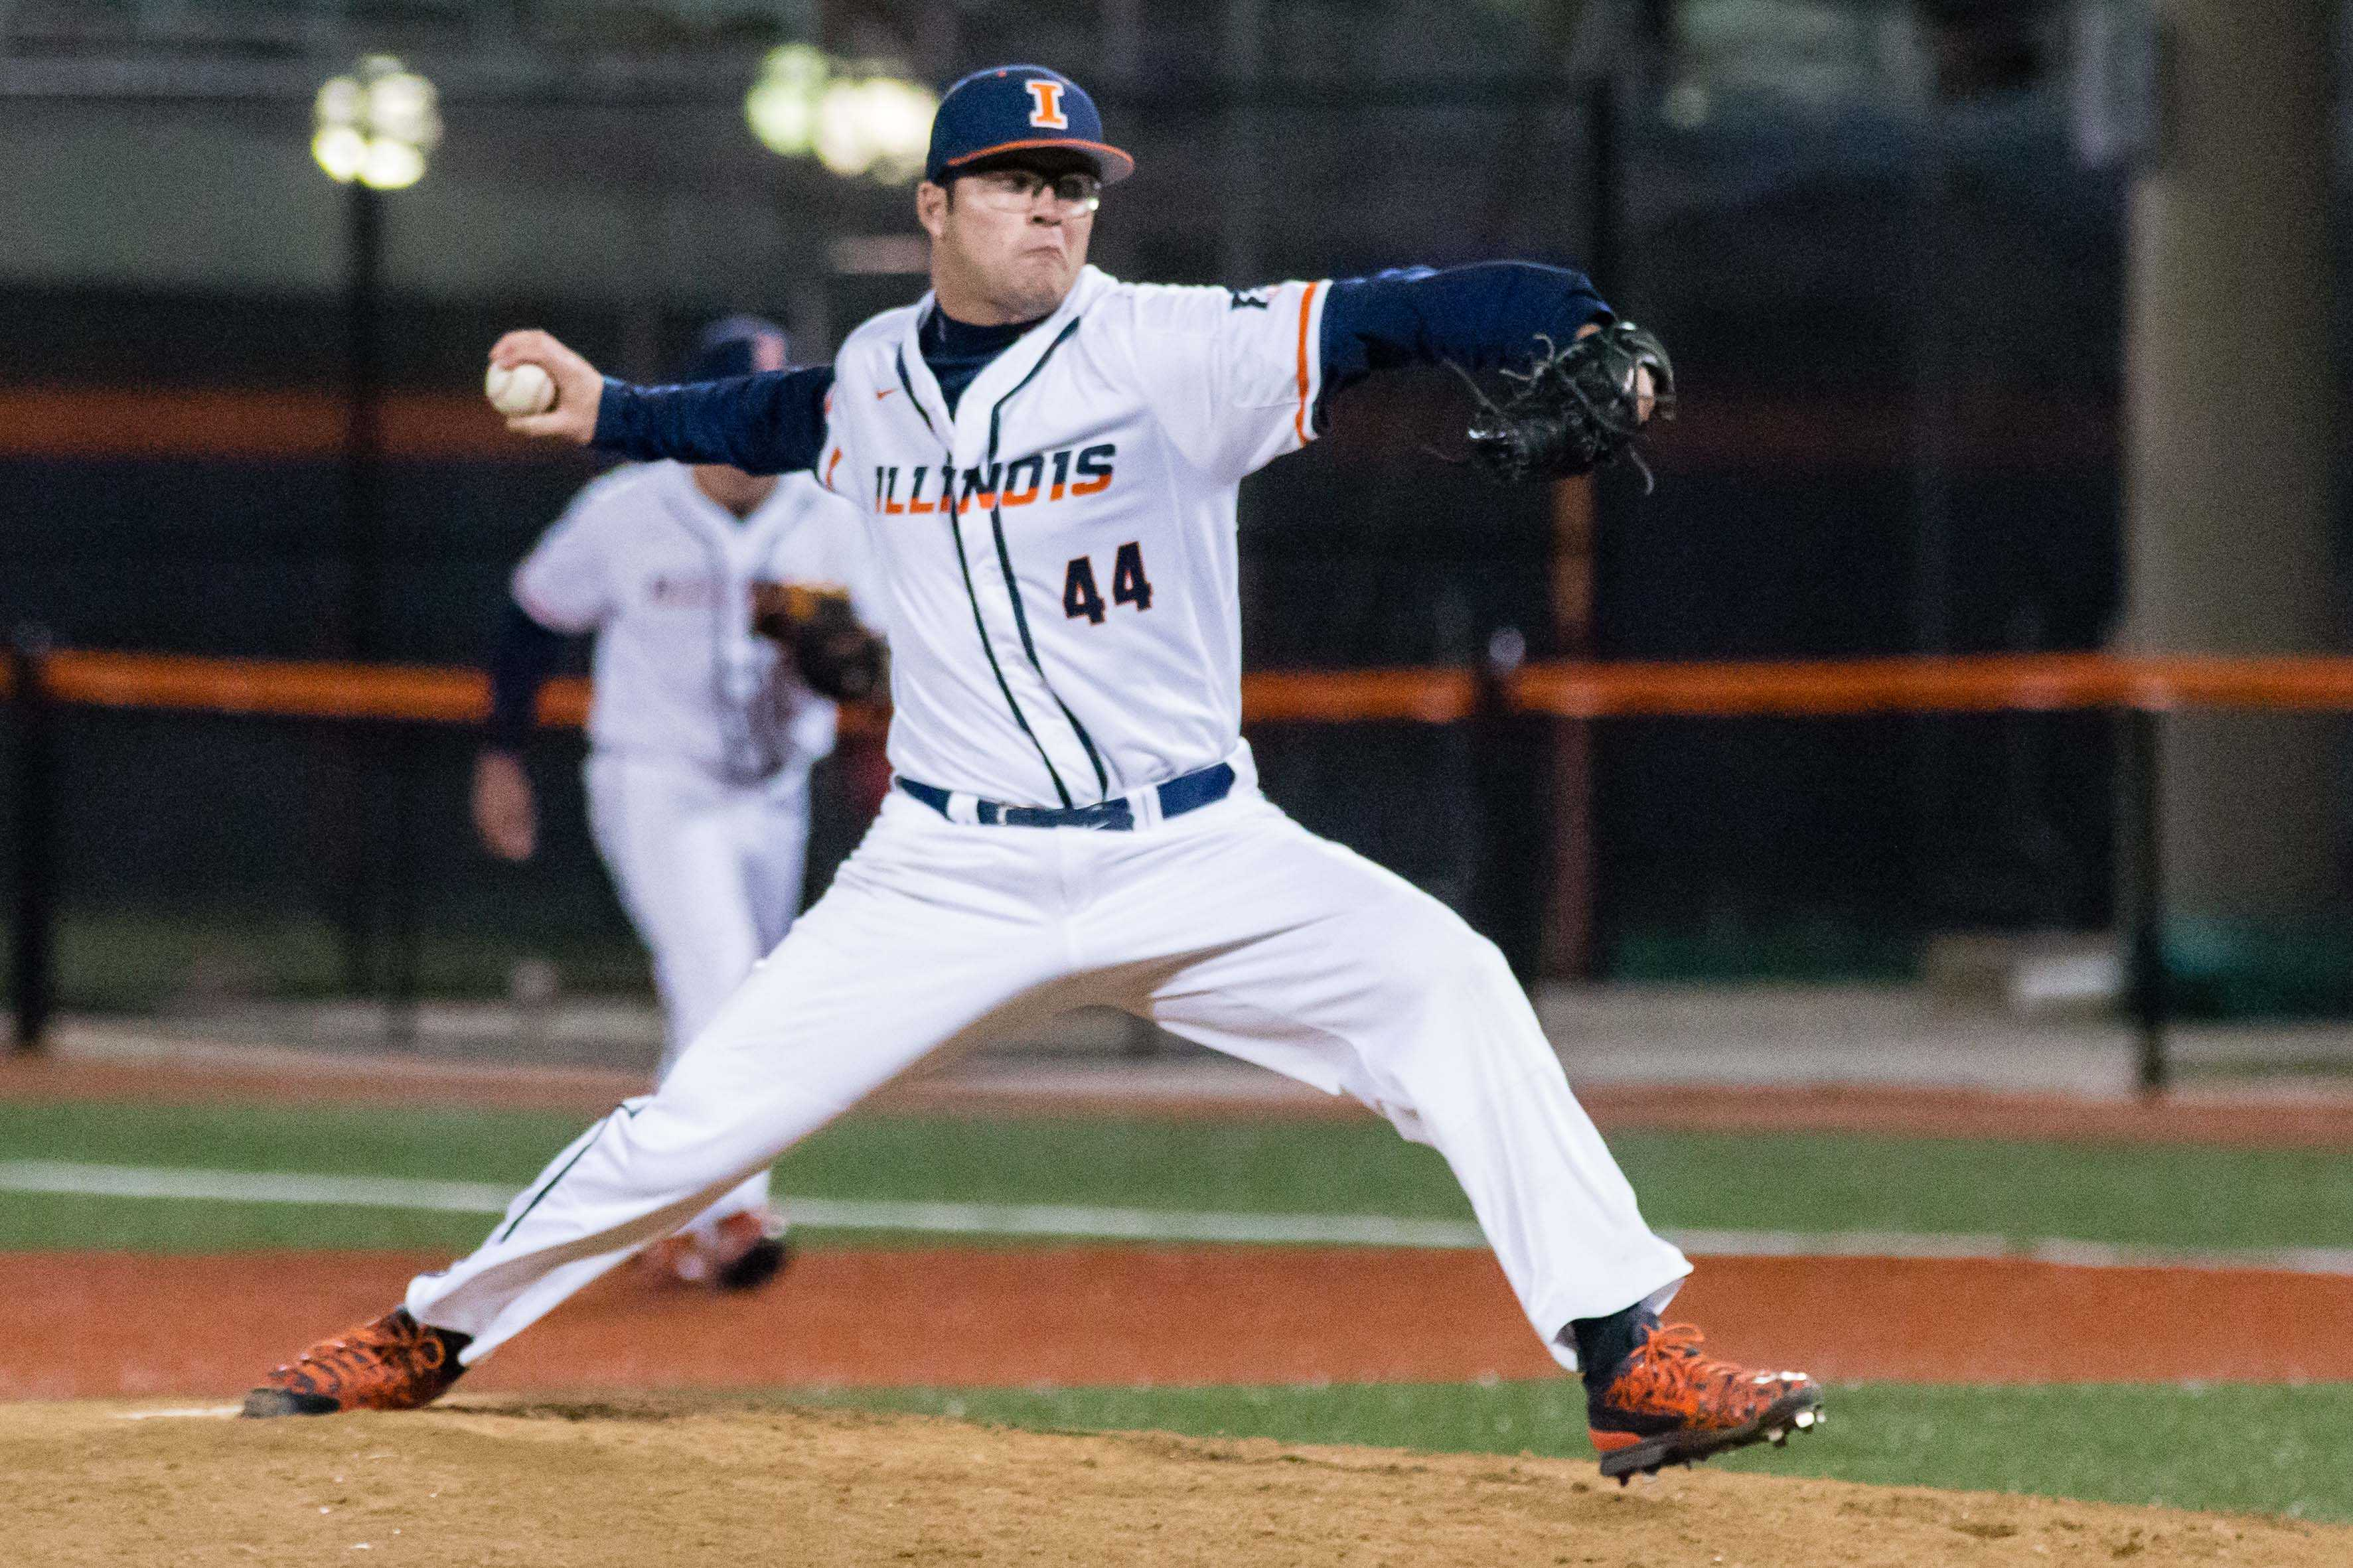 Illinois' Quentin Sefcik pitches in the game against ISU on April 12.